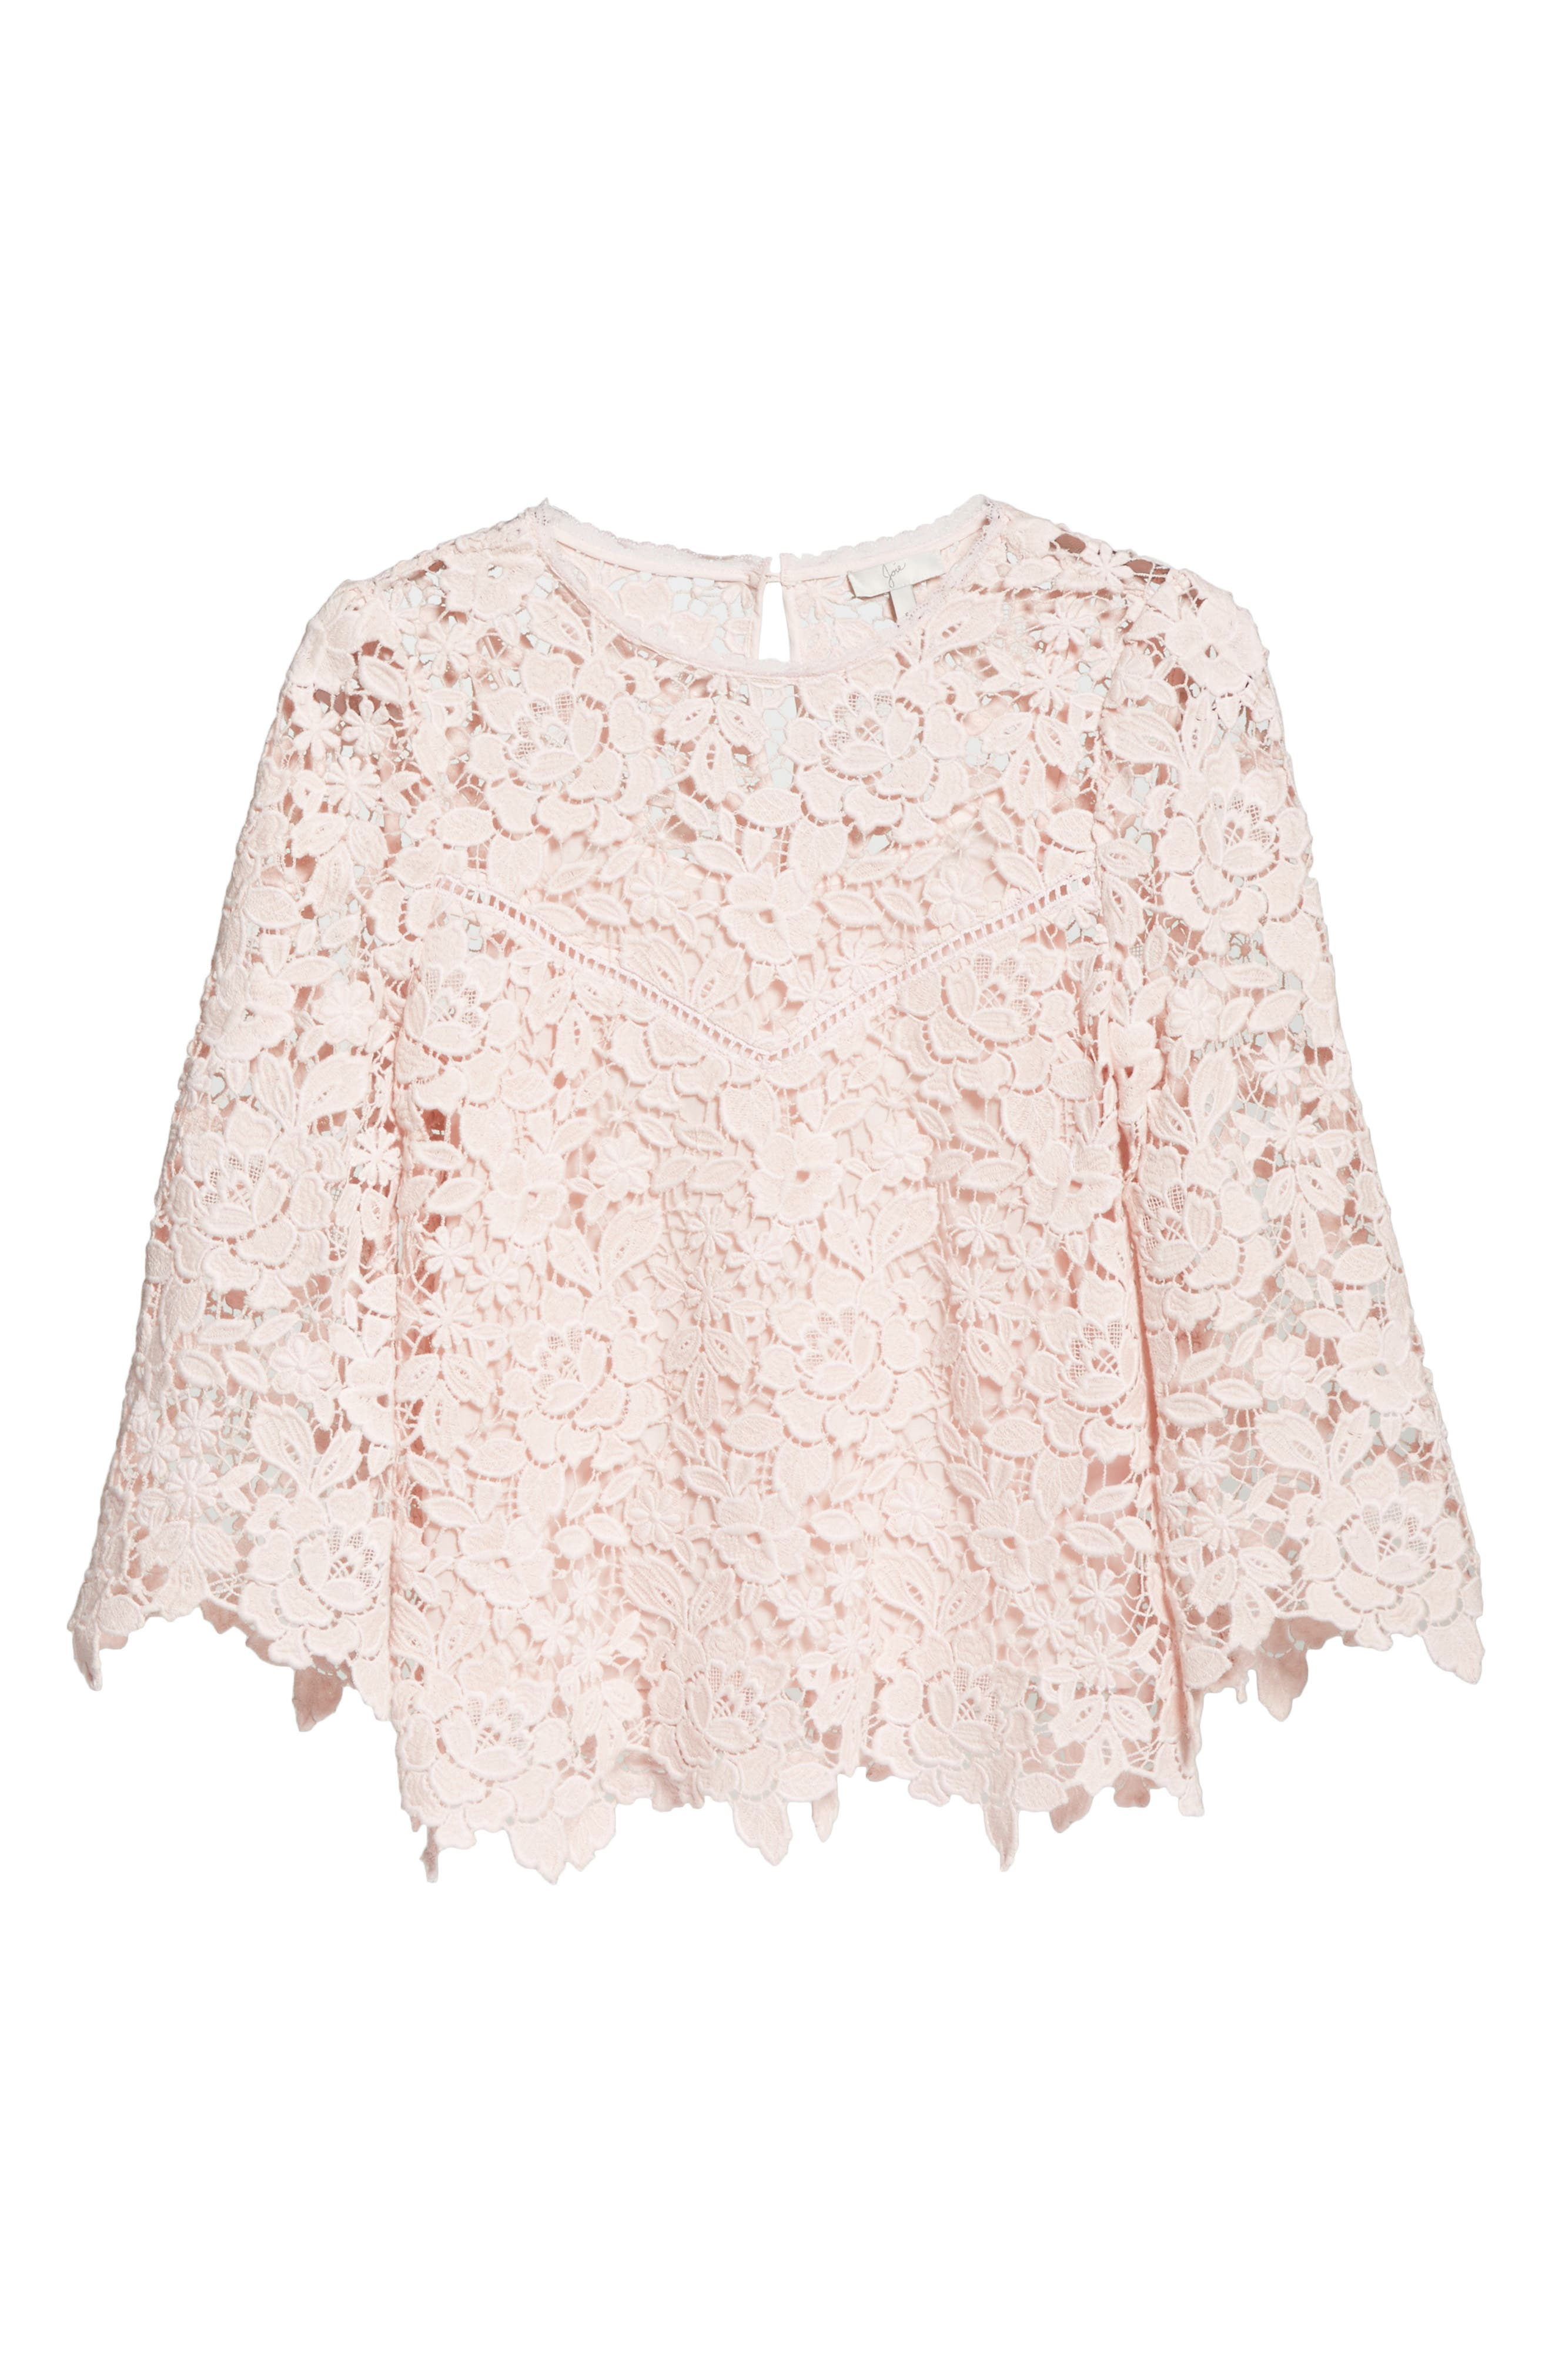 Charnette Lace Top,                             Alternate thumbnail 6, color,                             Rosewater